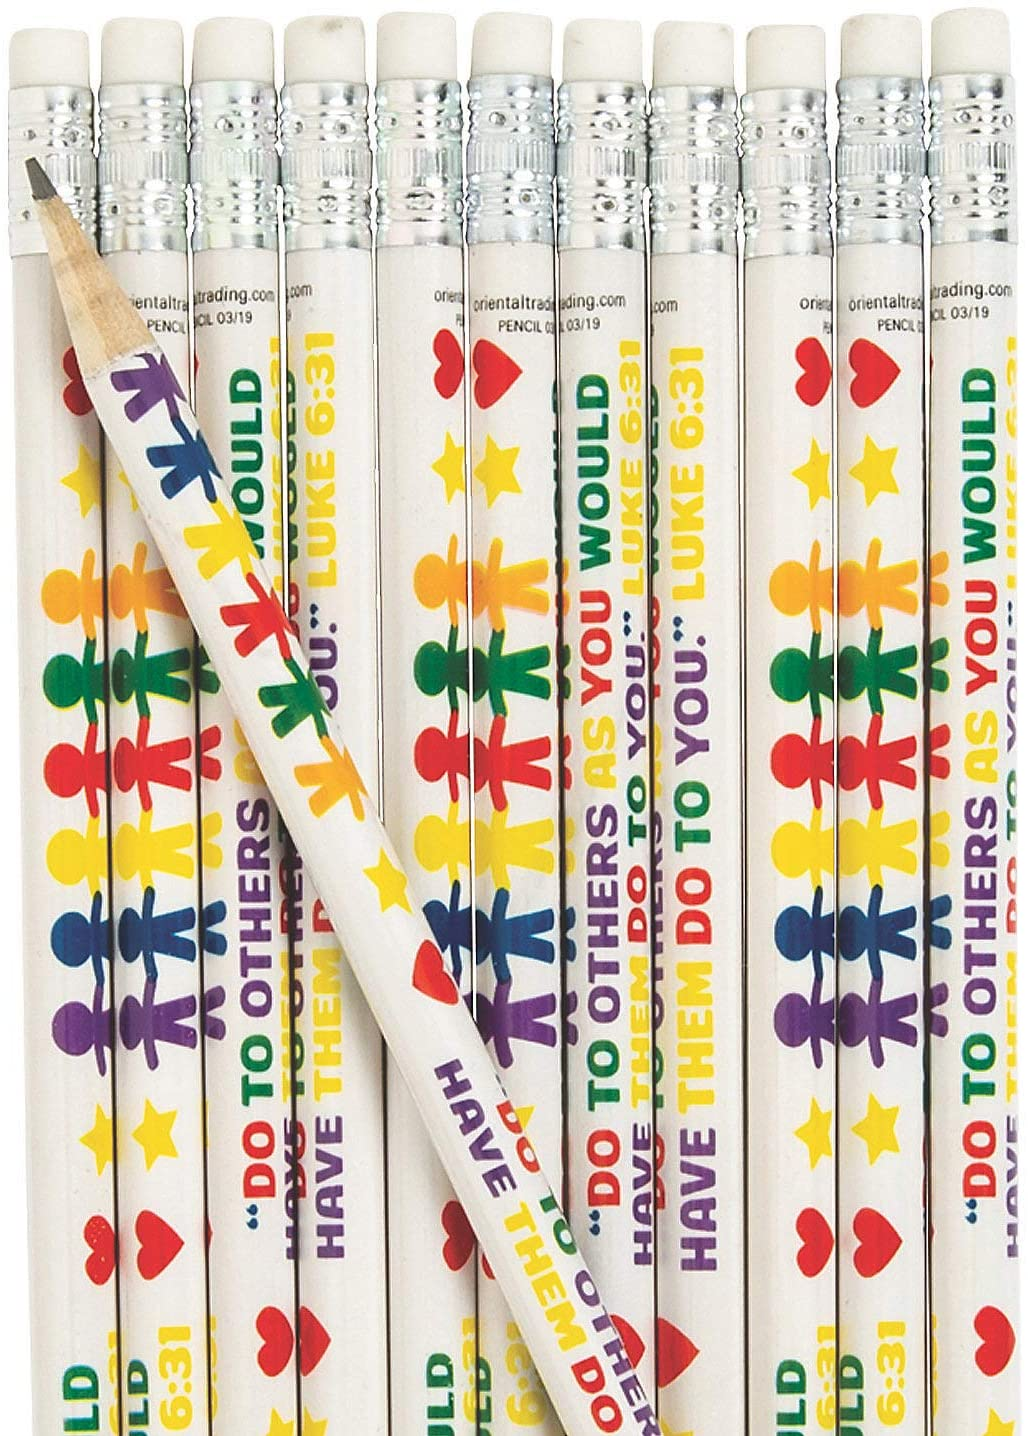 Fun Express - Be Kind Religious Pencils - Stationery - Pencils - Pencils - Printed - 24 Pieces